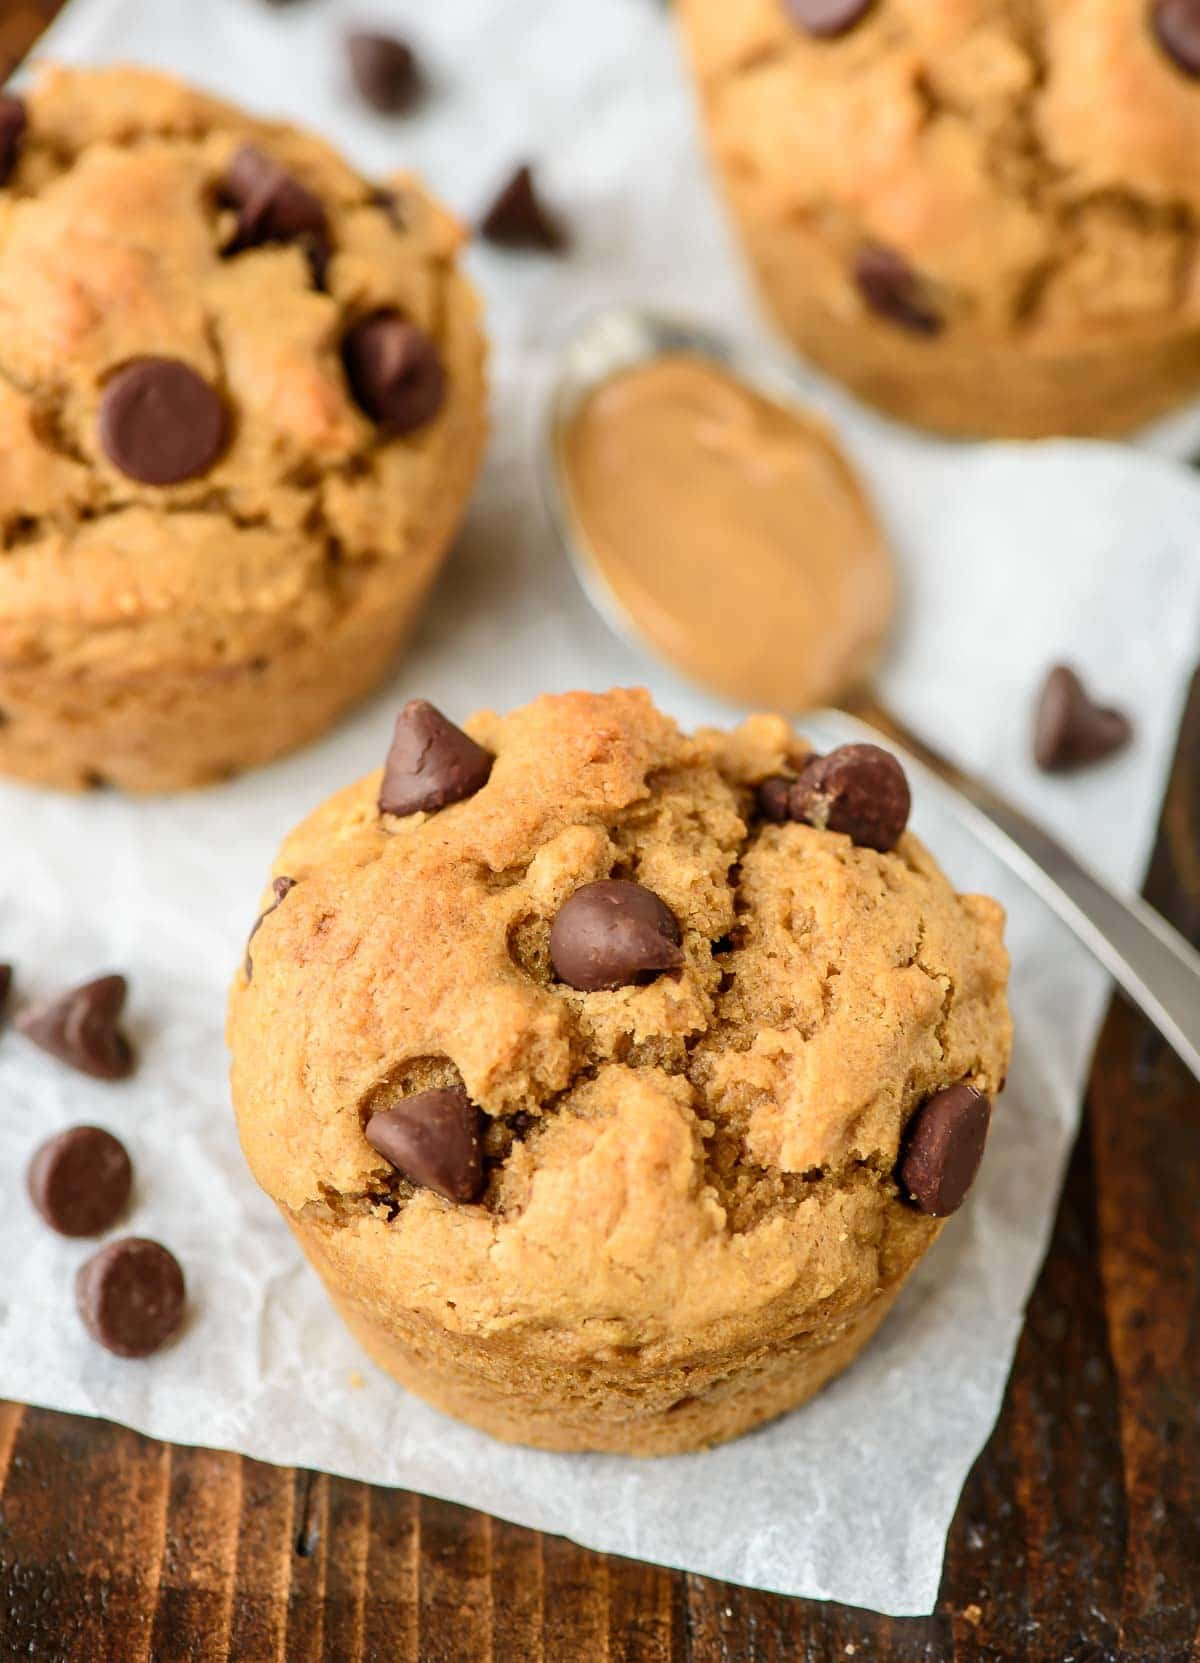 Chocolate Chip Peanut Butter Muffins. Made with whole wheat flour and coconut oil, these healthy muffins are protein packed and will keep you full for hours!